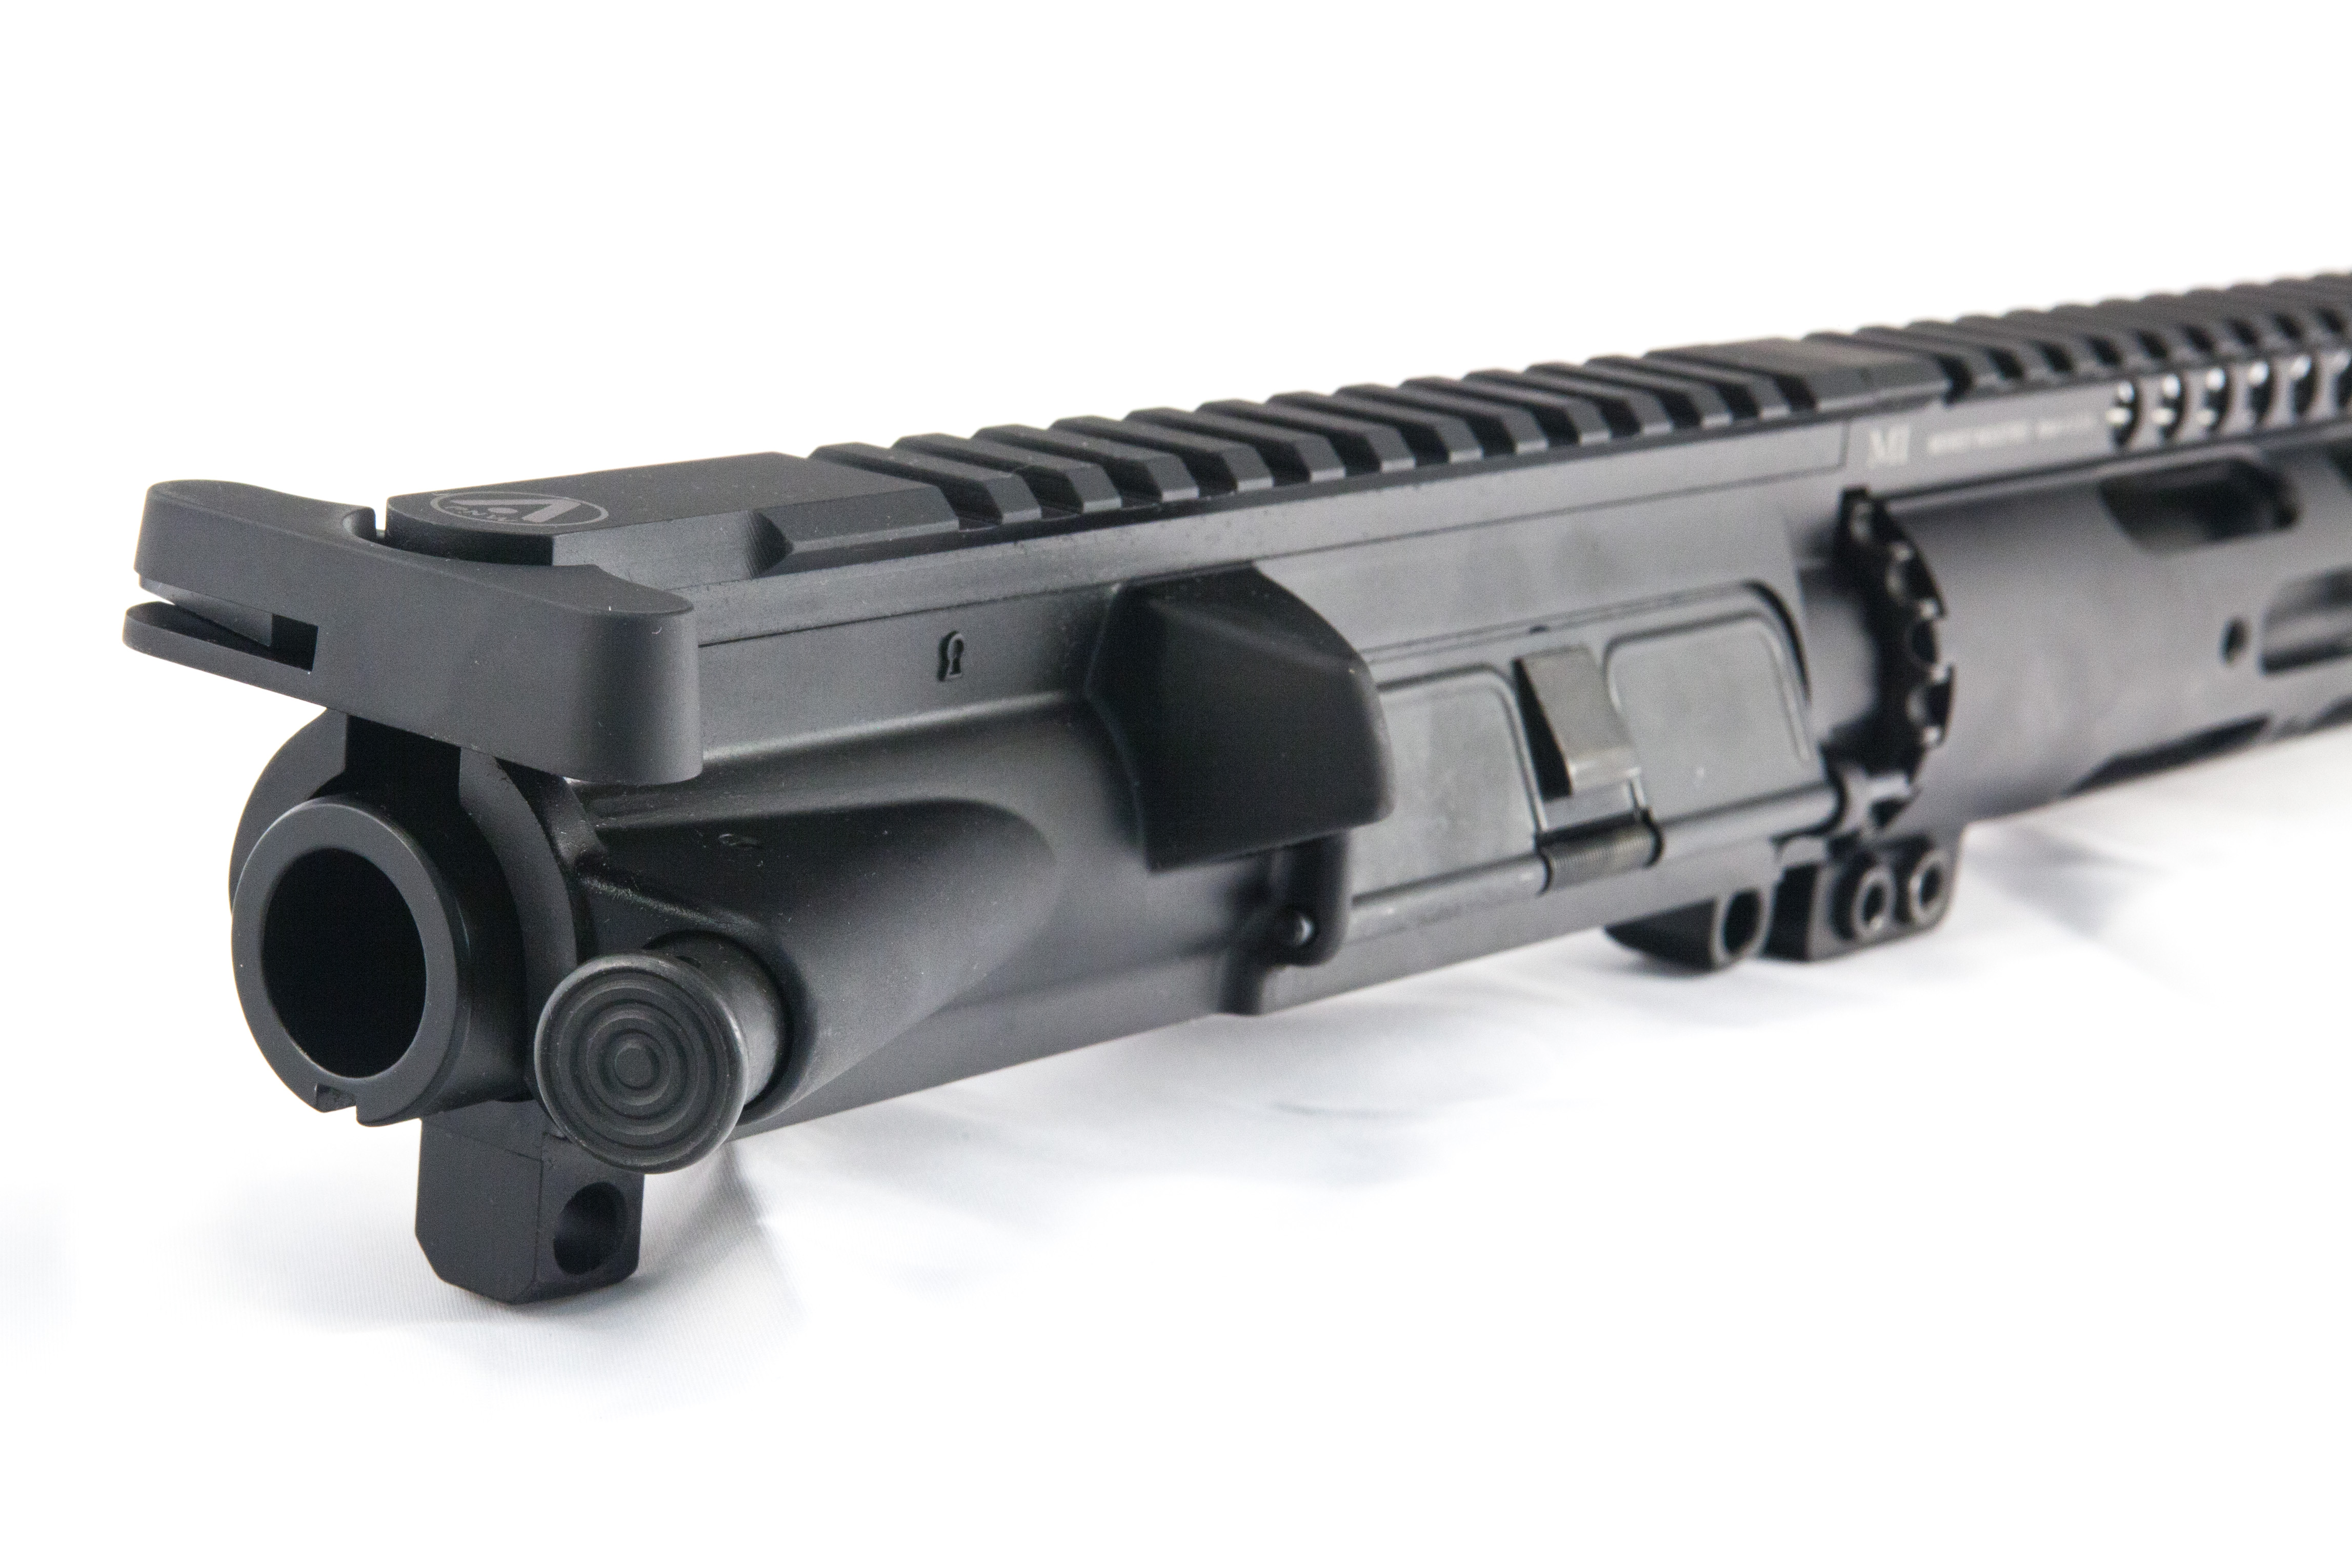 PNW Arms Signature Series 300 AAC Blackout 300BLK Complete Tactical AR 15 Upper Receiver Assembly DefenseReview.com DR 12 PNW Arms Signature Series 300 AAC Blackout (300BLK) Tactical AR 15 Carbine 16 Mid Length Upper Receiver and Ammo Combo Deal Available for 300 BLK CONUS Delivery Program Launch!